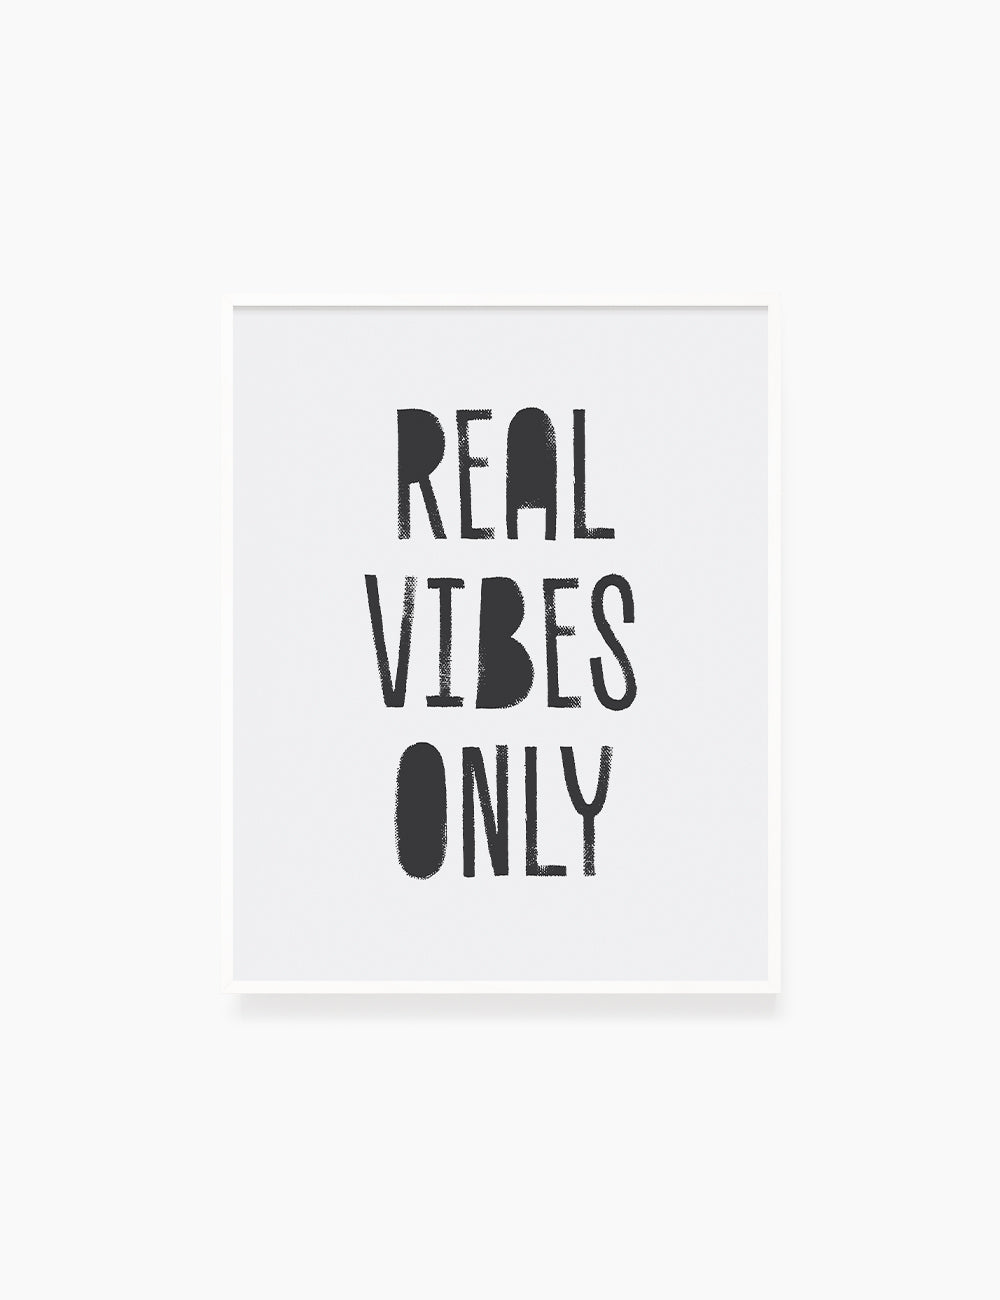 A4 A3 A2 A1 Good Vibes Only Black /& White Text Poster Print Wall Art